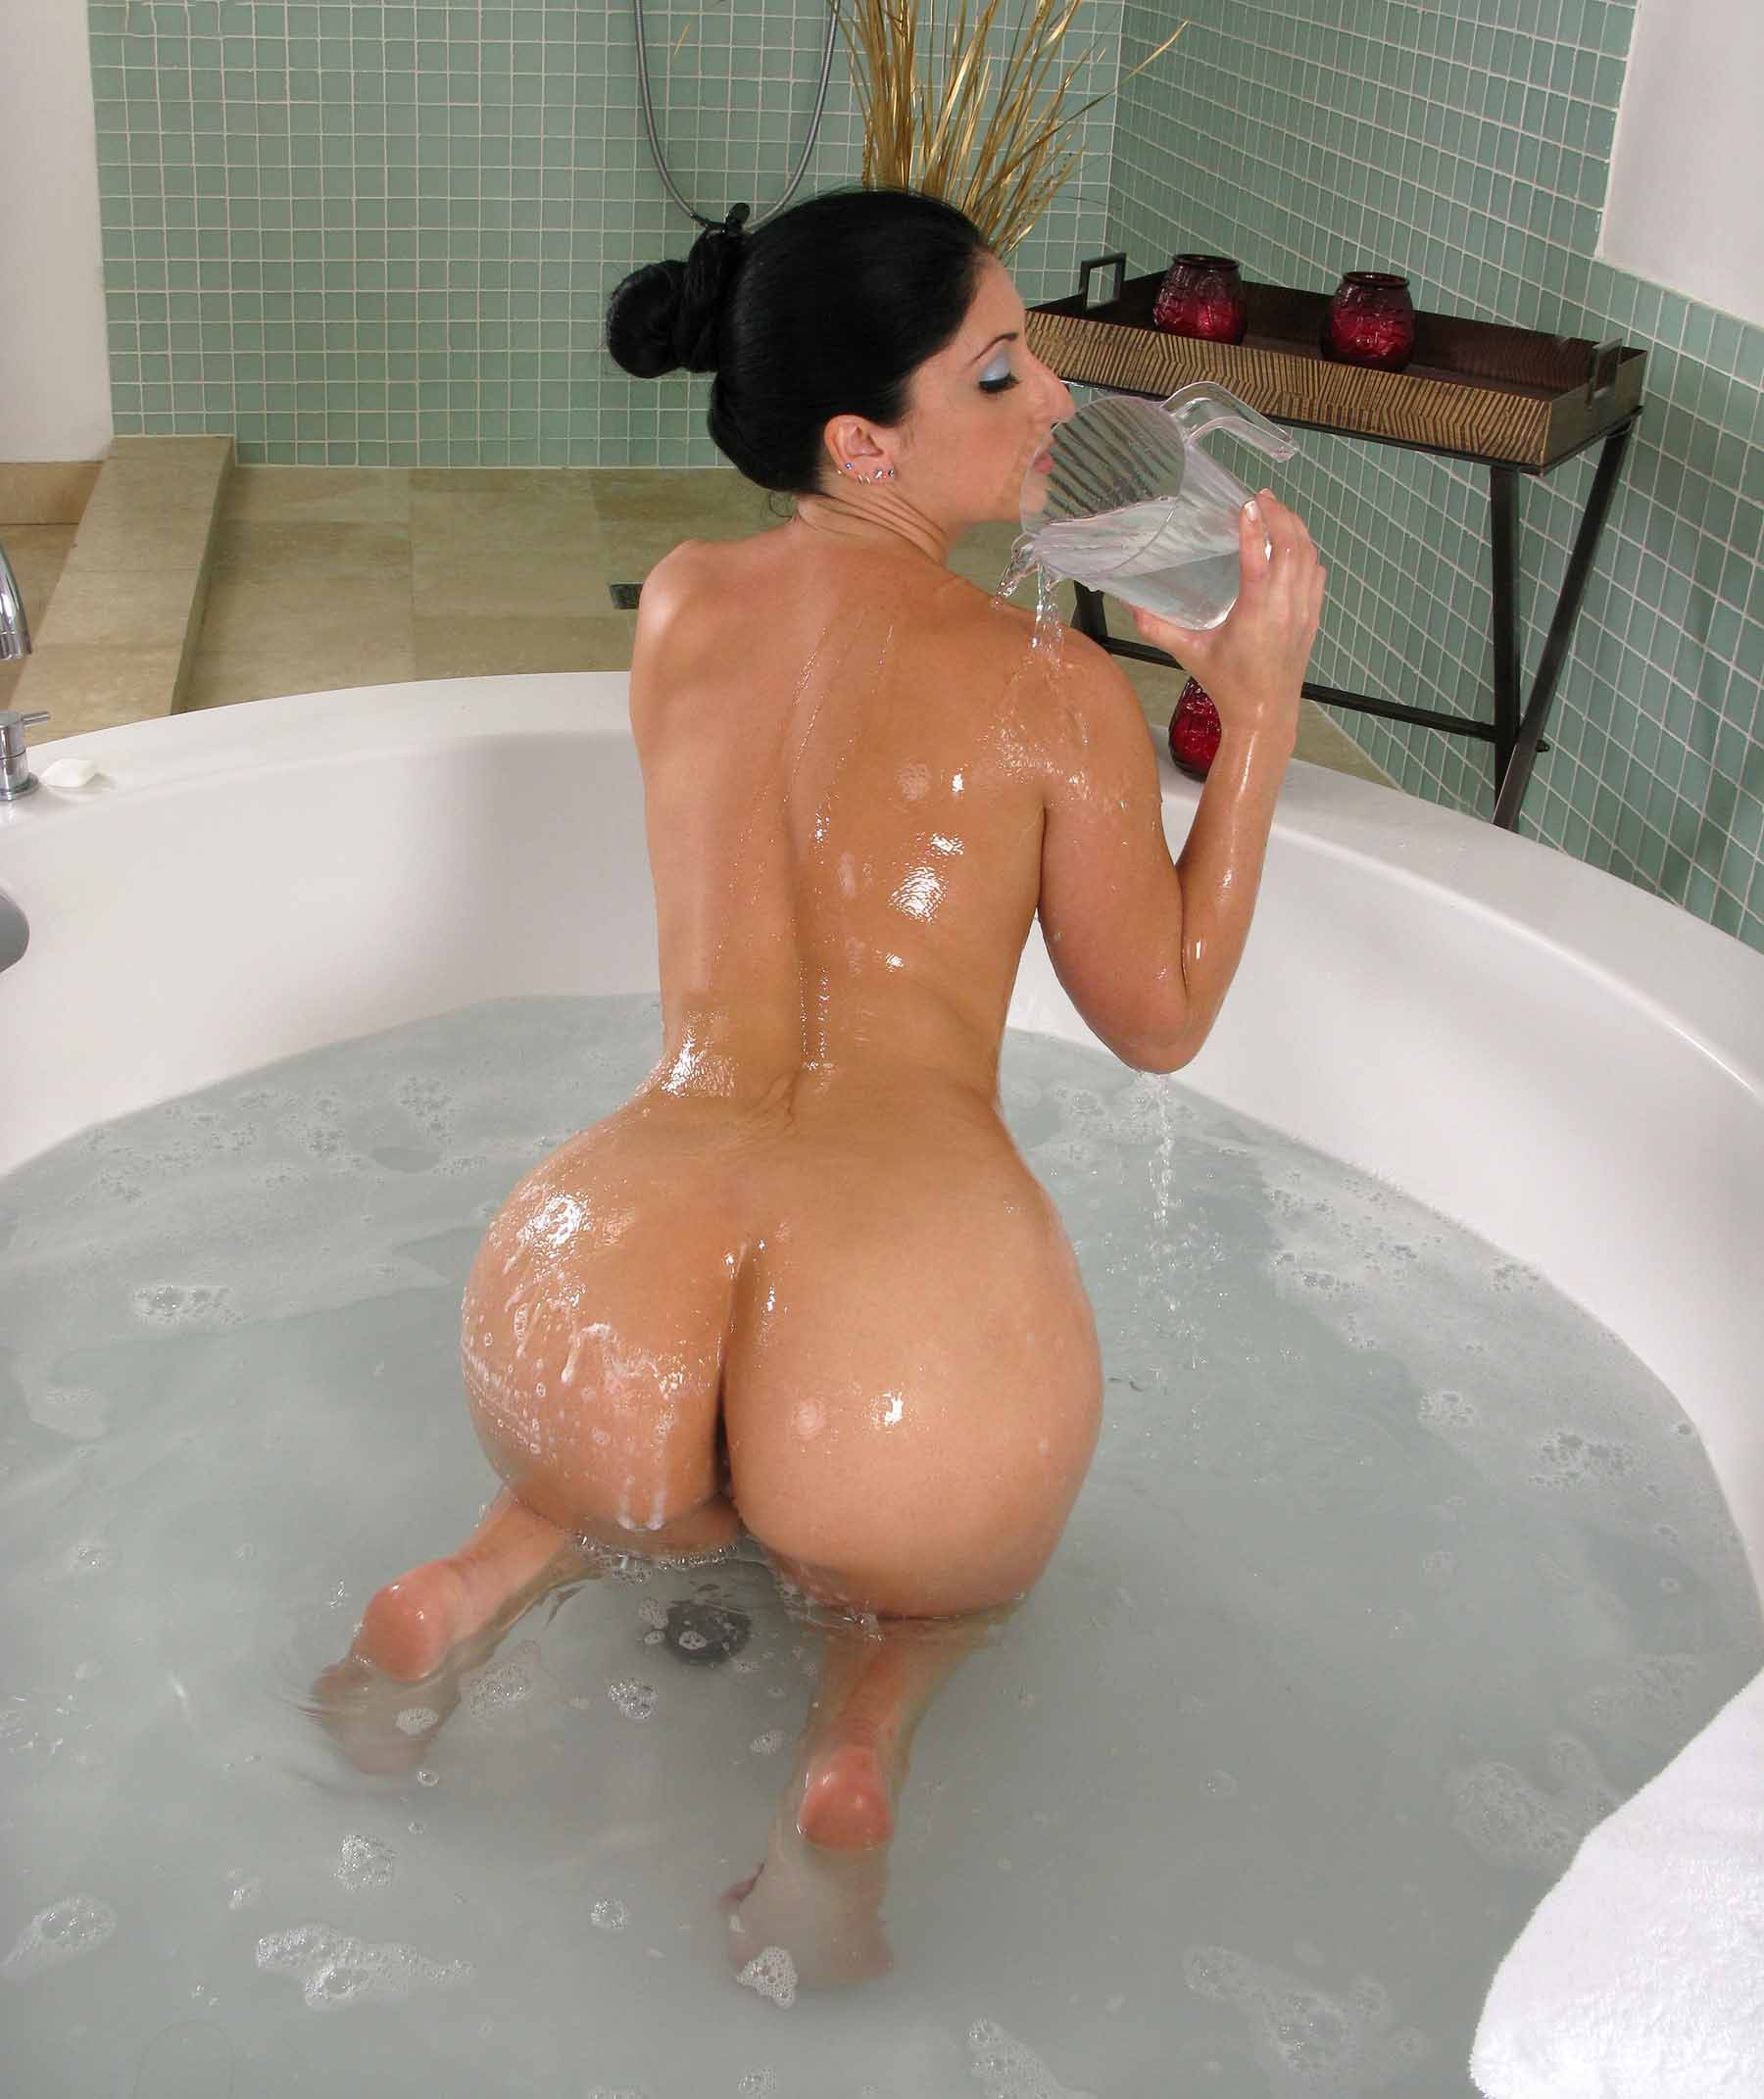 Big Ass Booty In The Shower